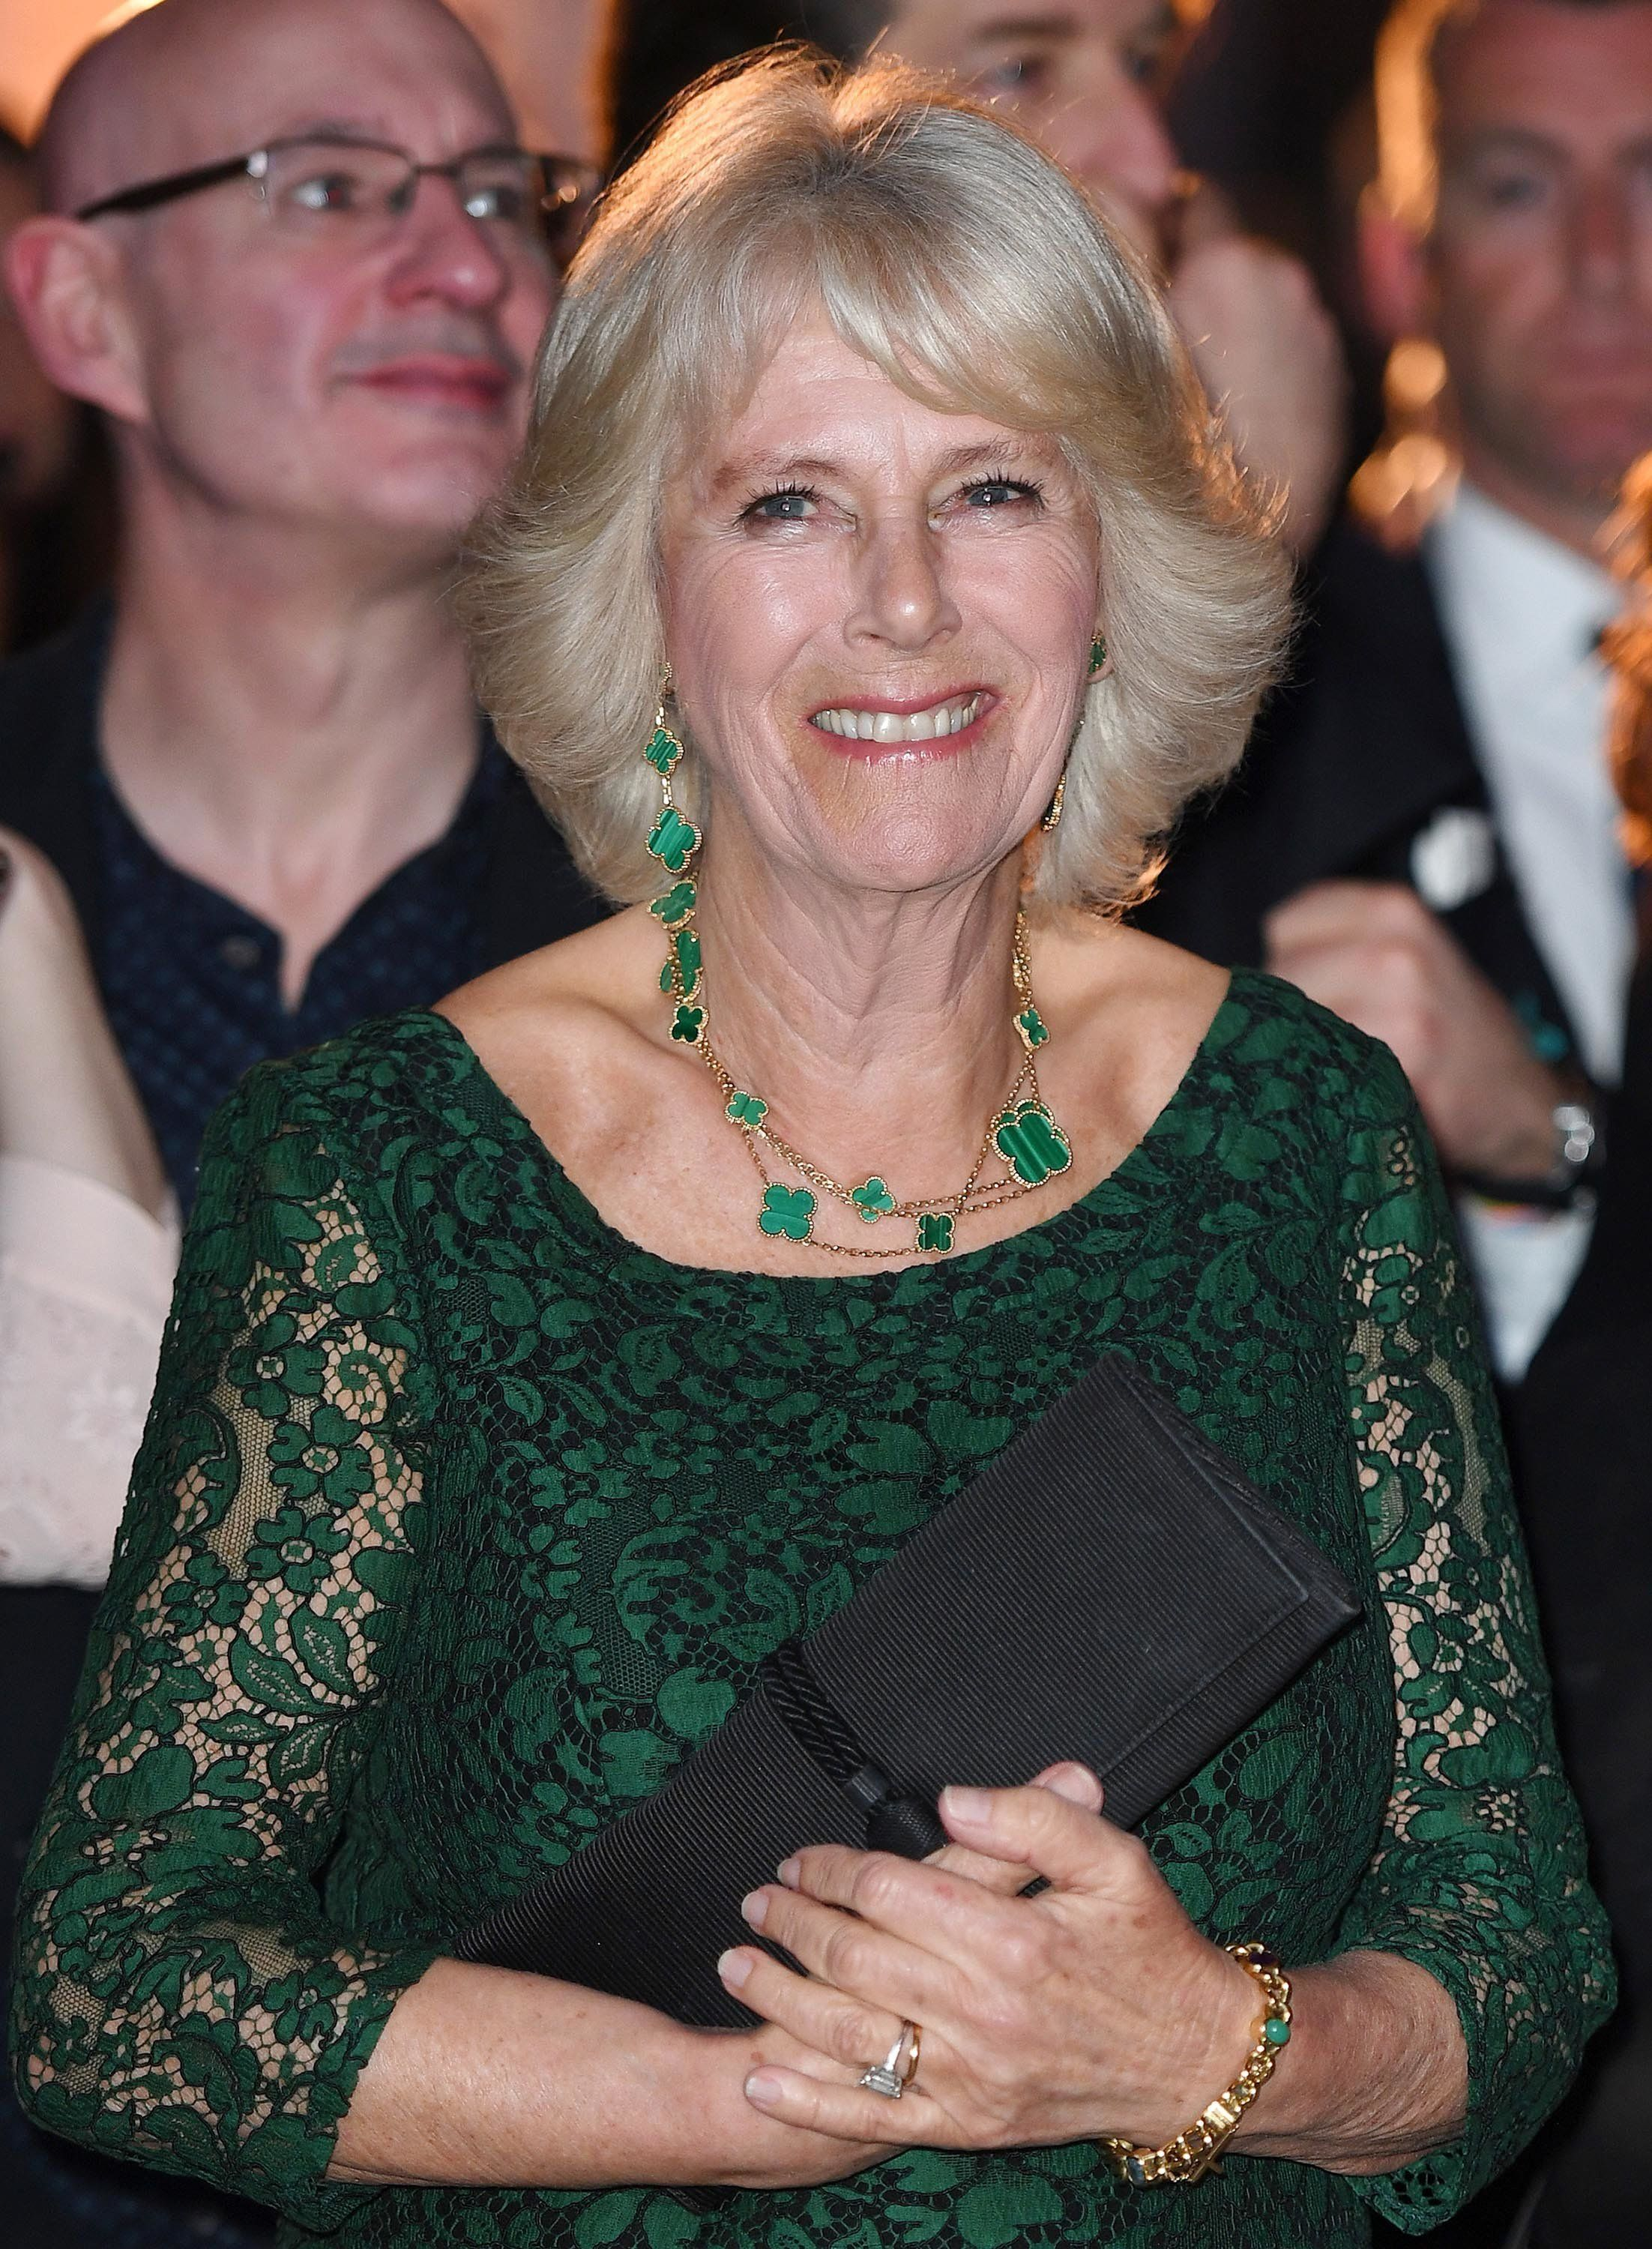 The Duchess of Cornwall attends the launch of Panama Wildlife Conservation Charity, at the Victoria and Albert Museum, London